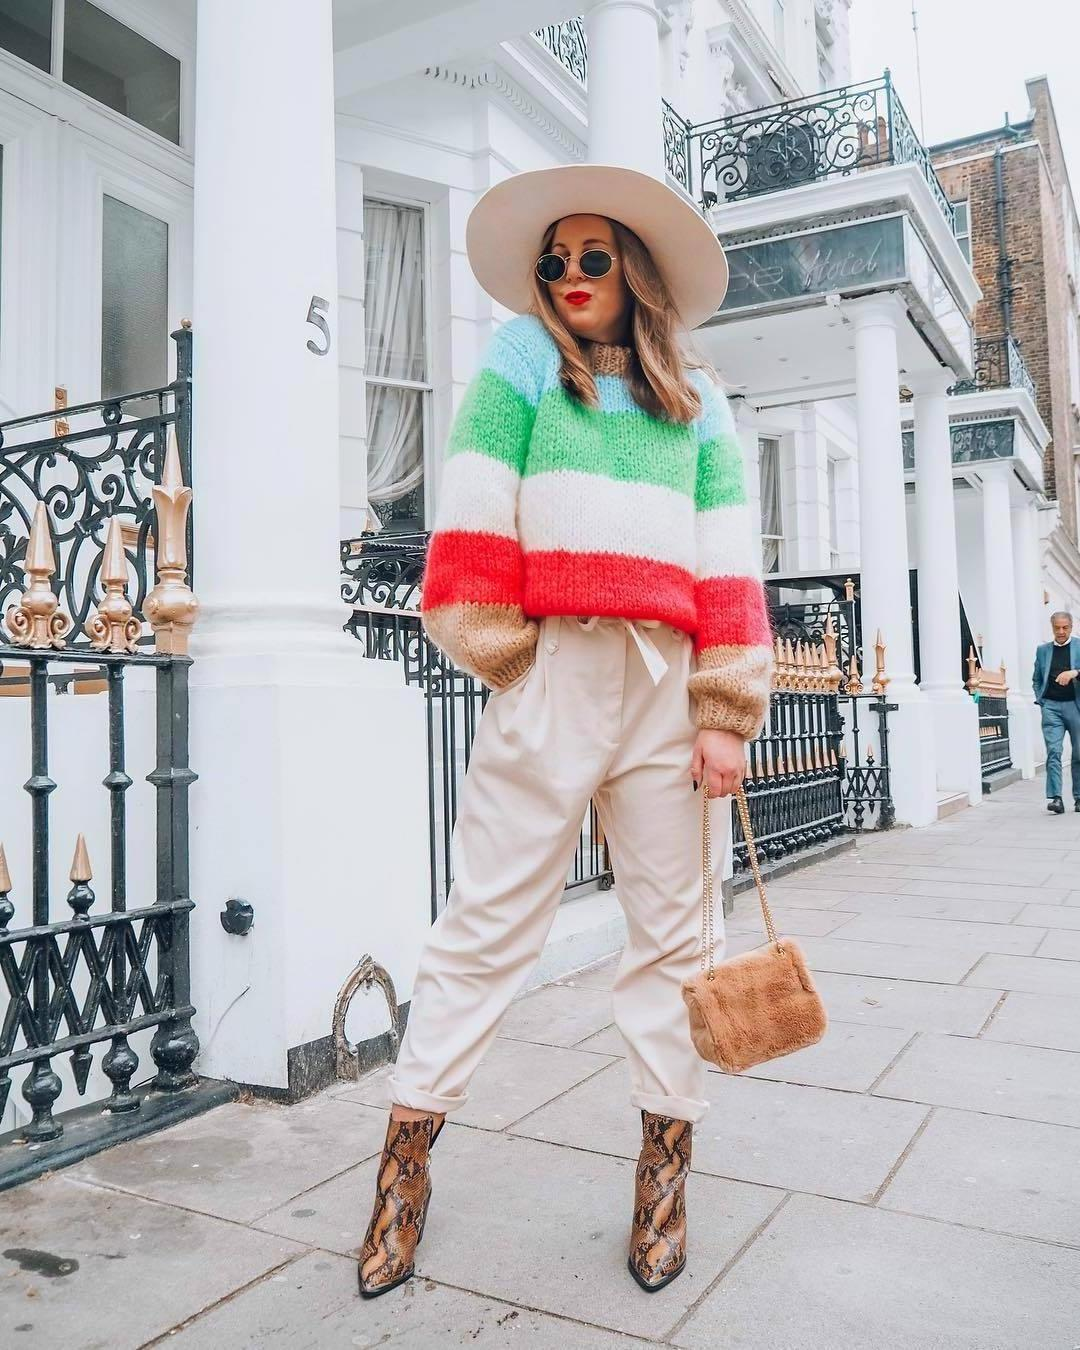 Sweater Stripes Sweater Striped Sweater Knitted Sweater Snake Print Ankle Boots Brown Boots Pleated High Waisted Pants Furry Bag Felt Hat cover image